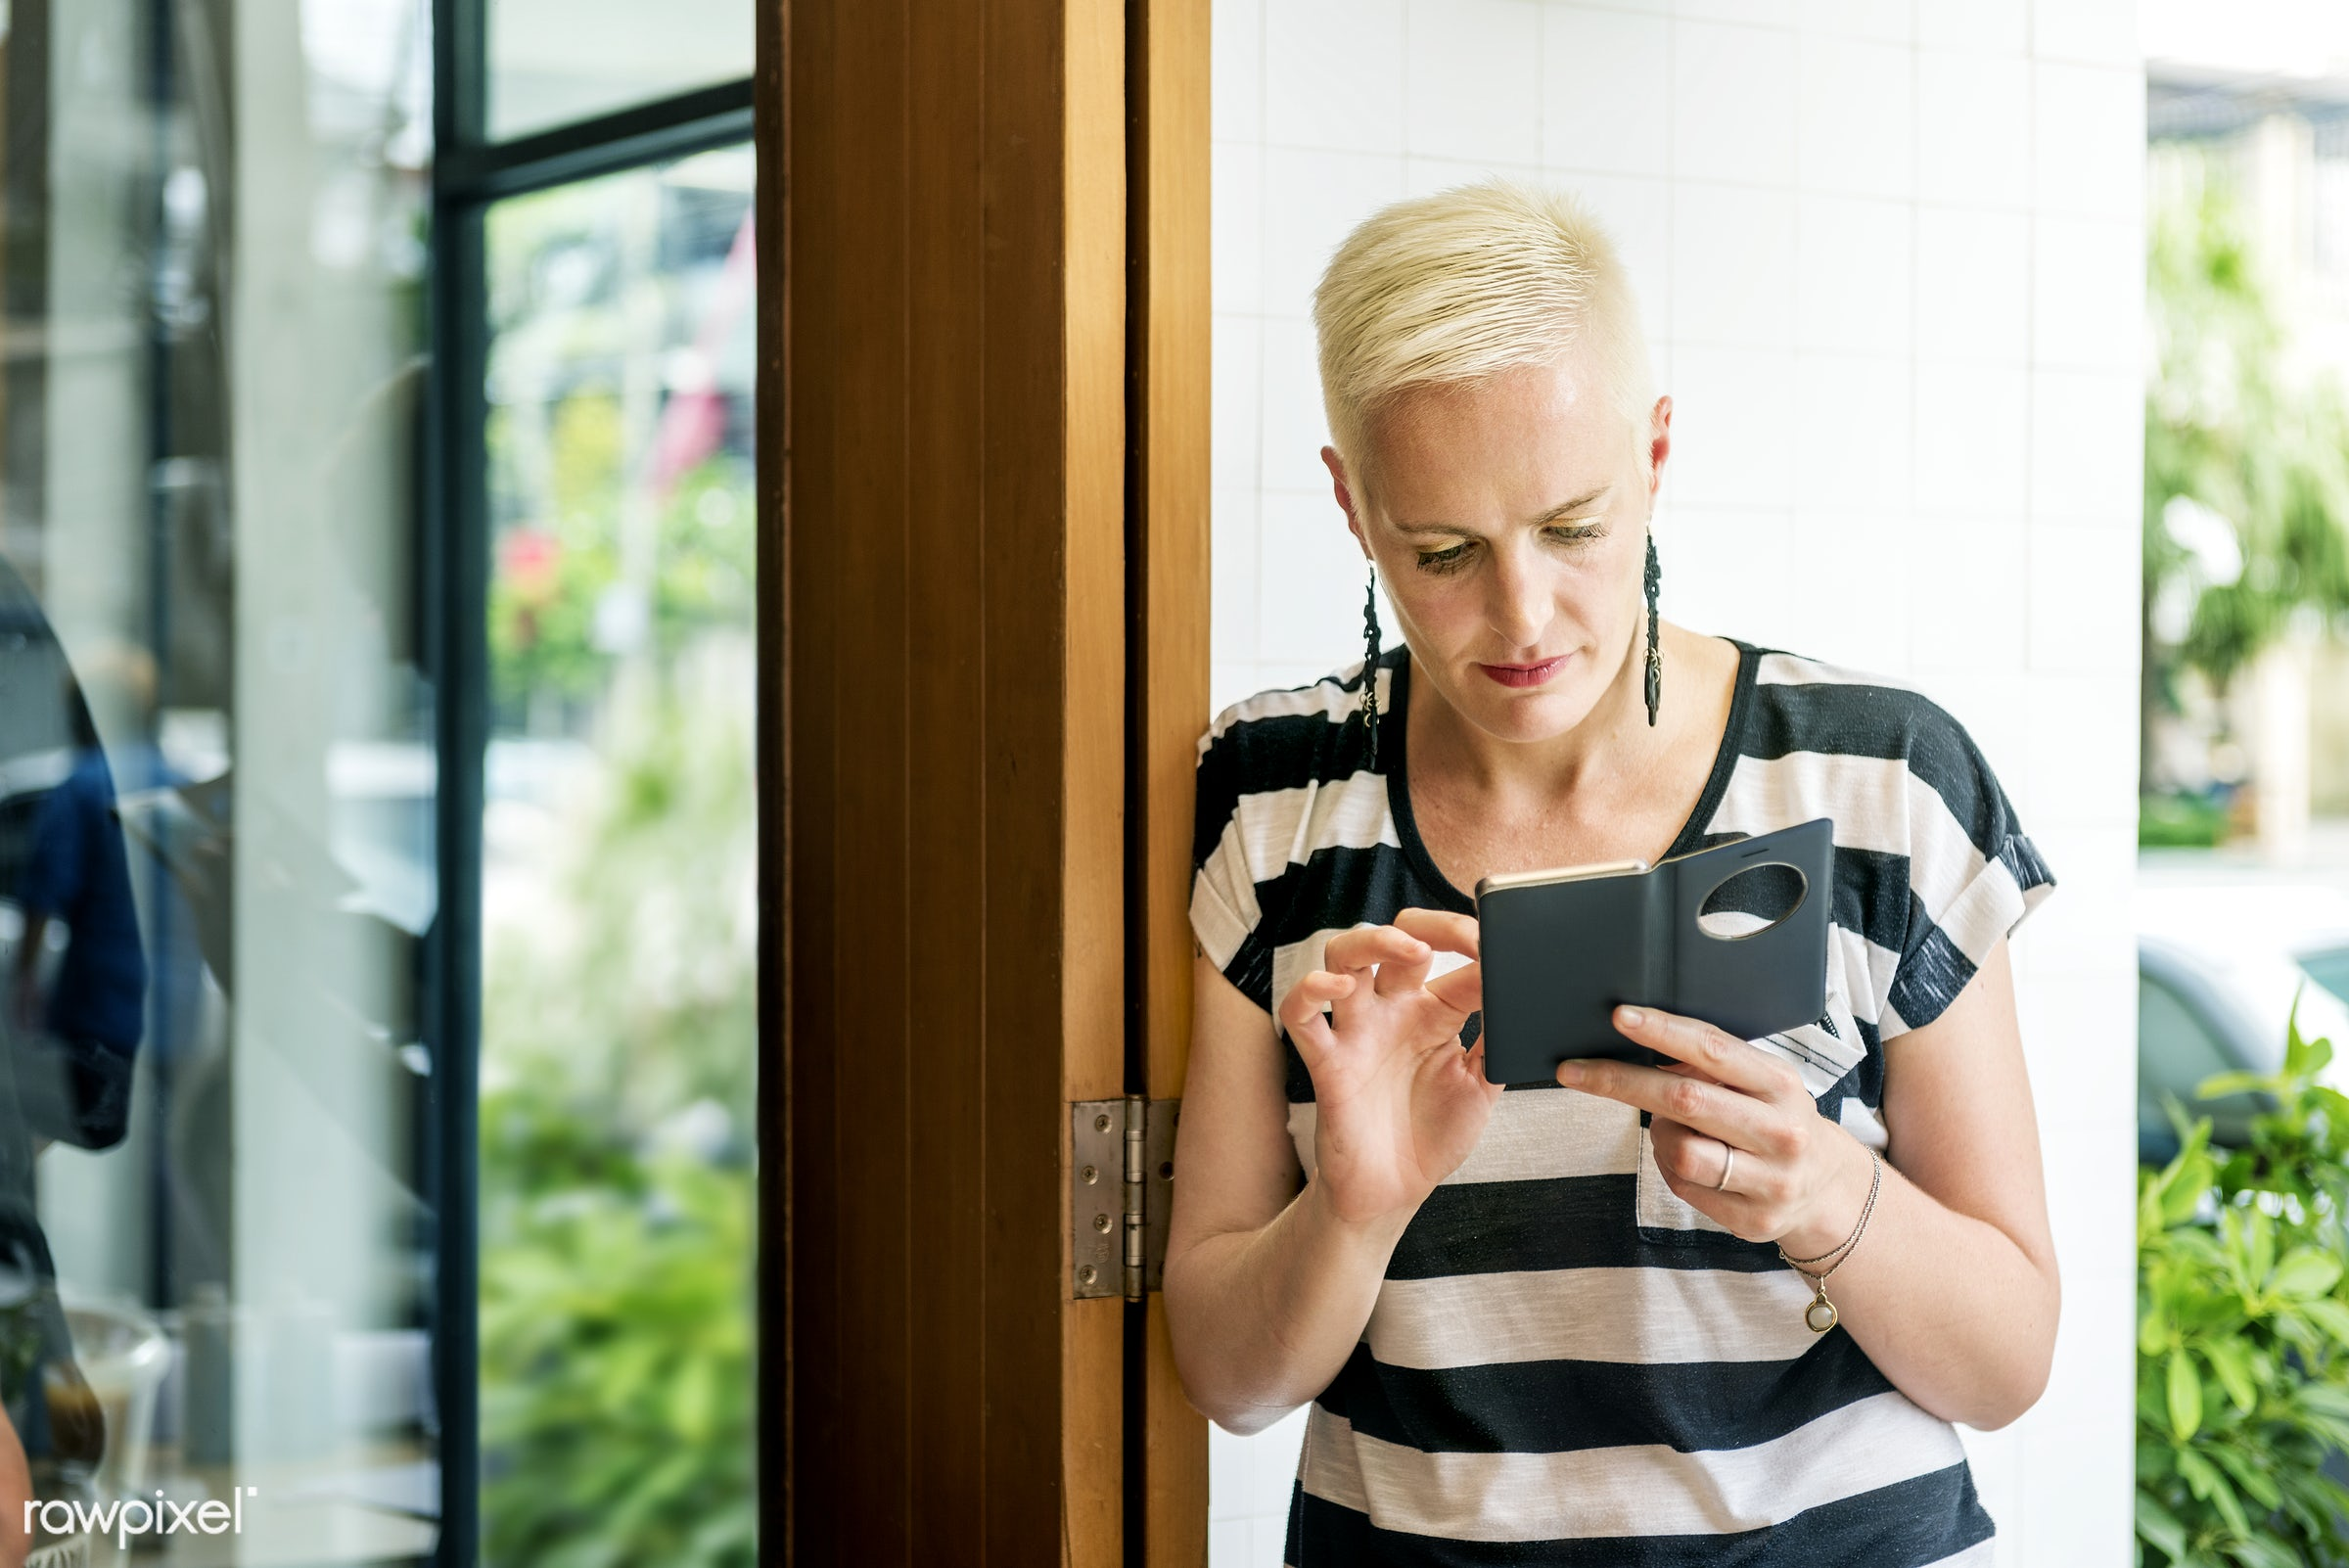 Woman texting on her phone - calm, casual, chilling, connection, content, device, electronic, enjoyment, entertainment,...